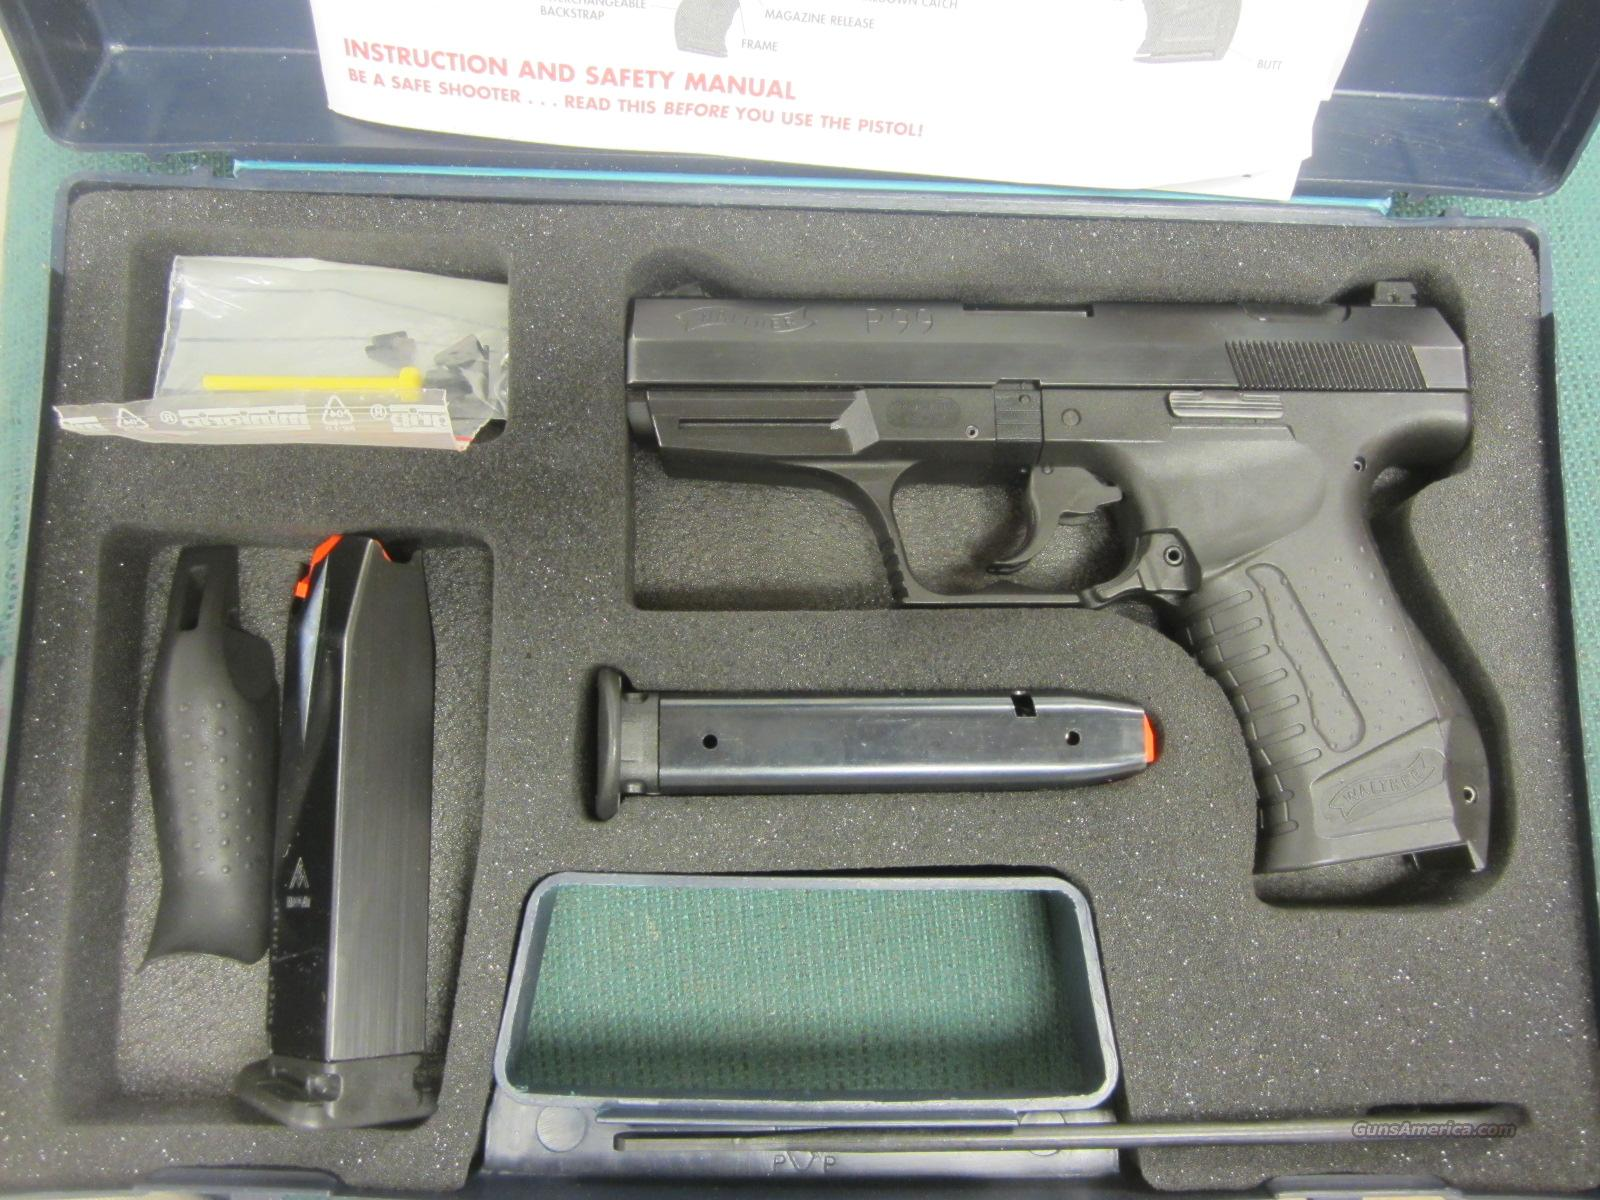 WALTHER P99 40 S&W  Guns > Pistols > Walther Pistols > Post WWII > P99/PPQ